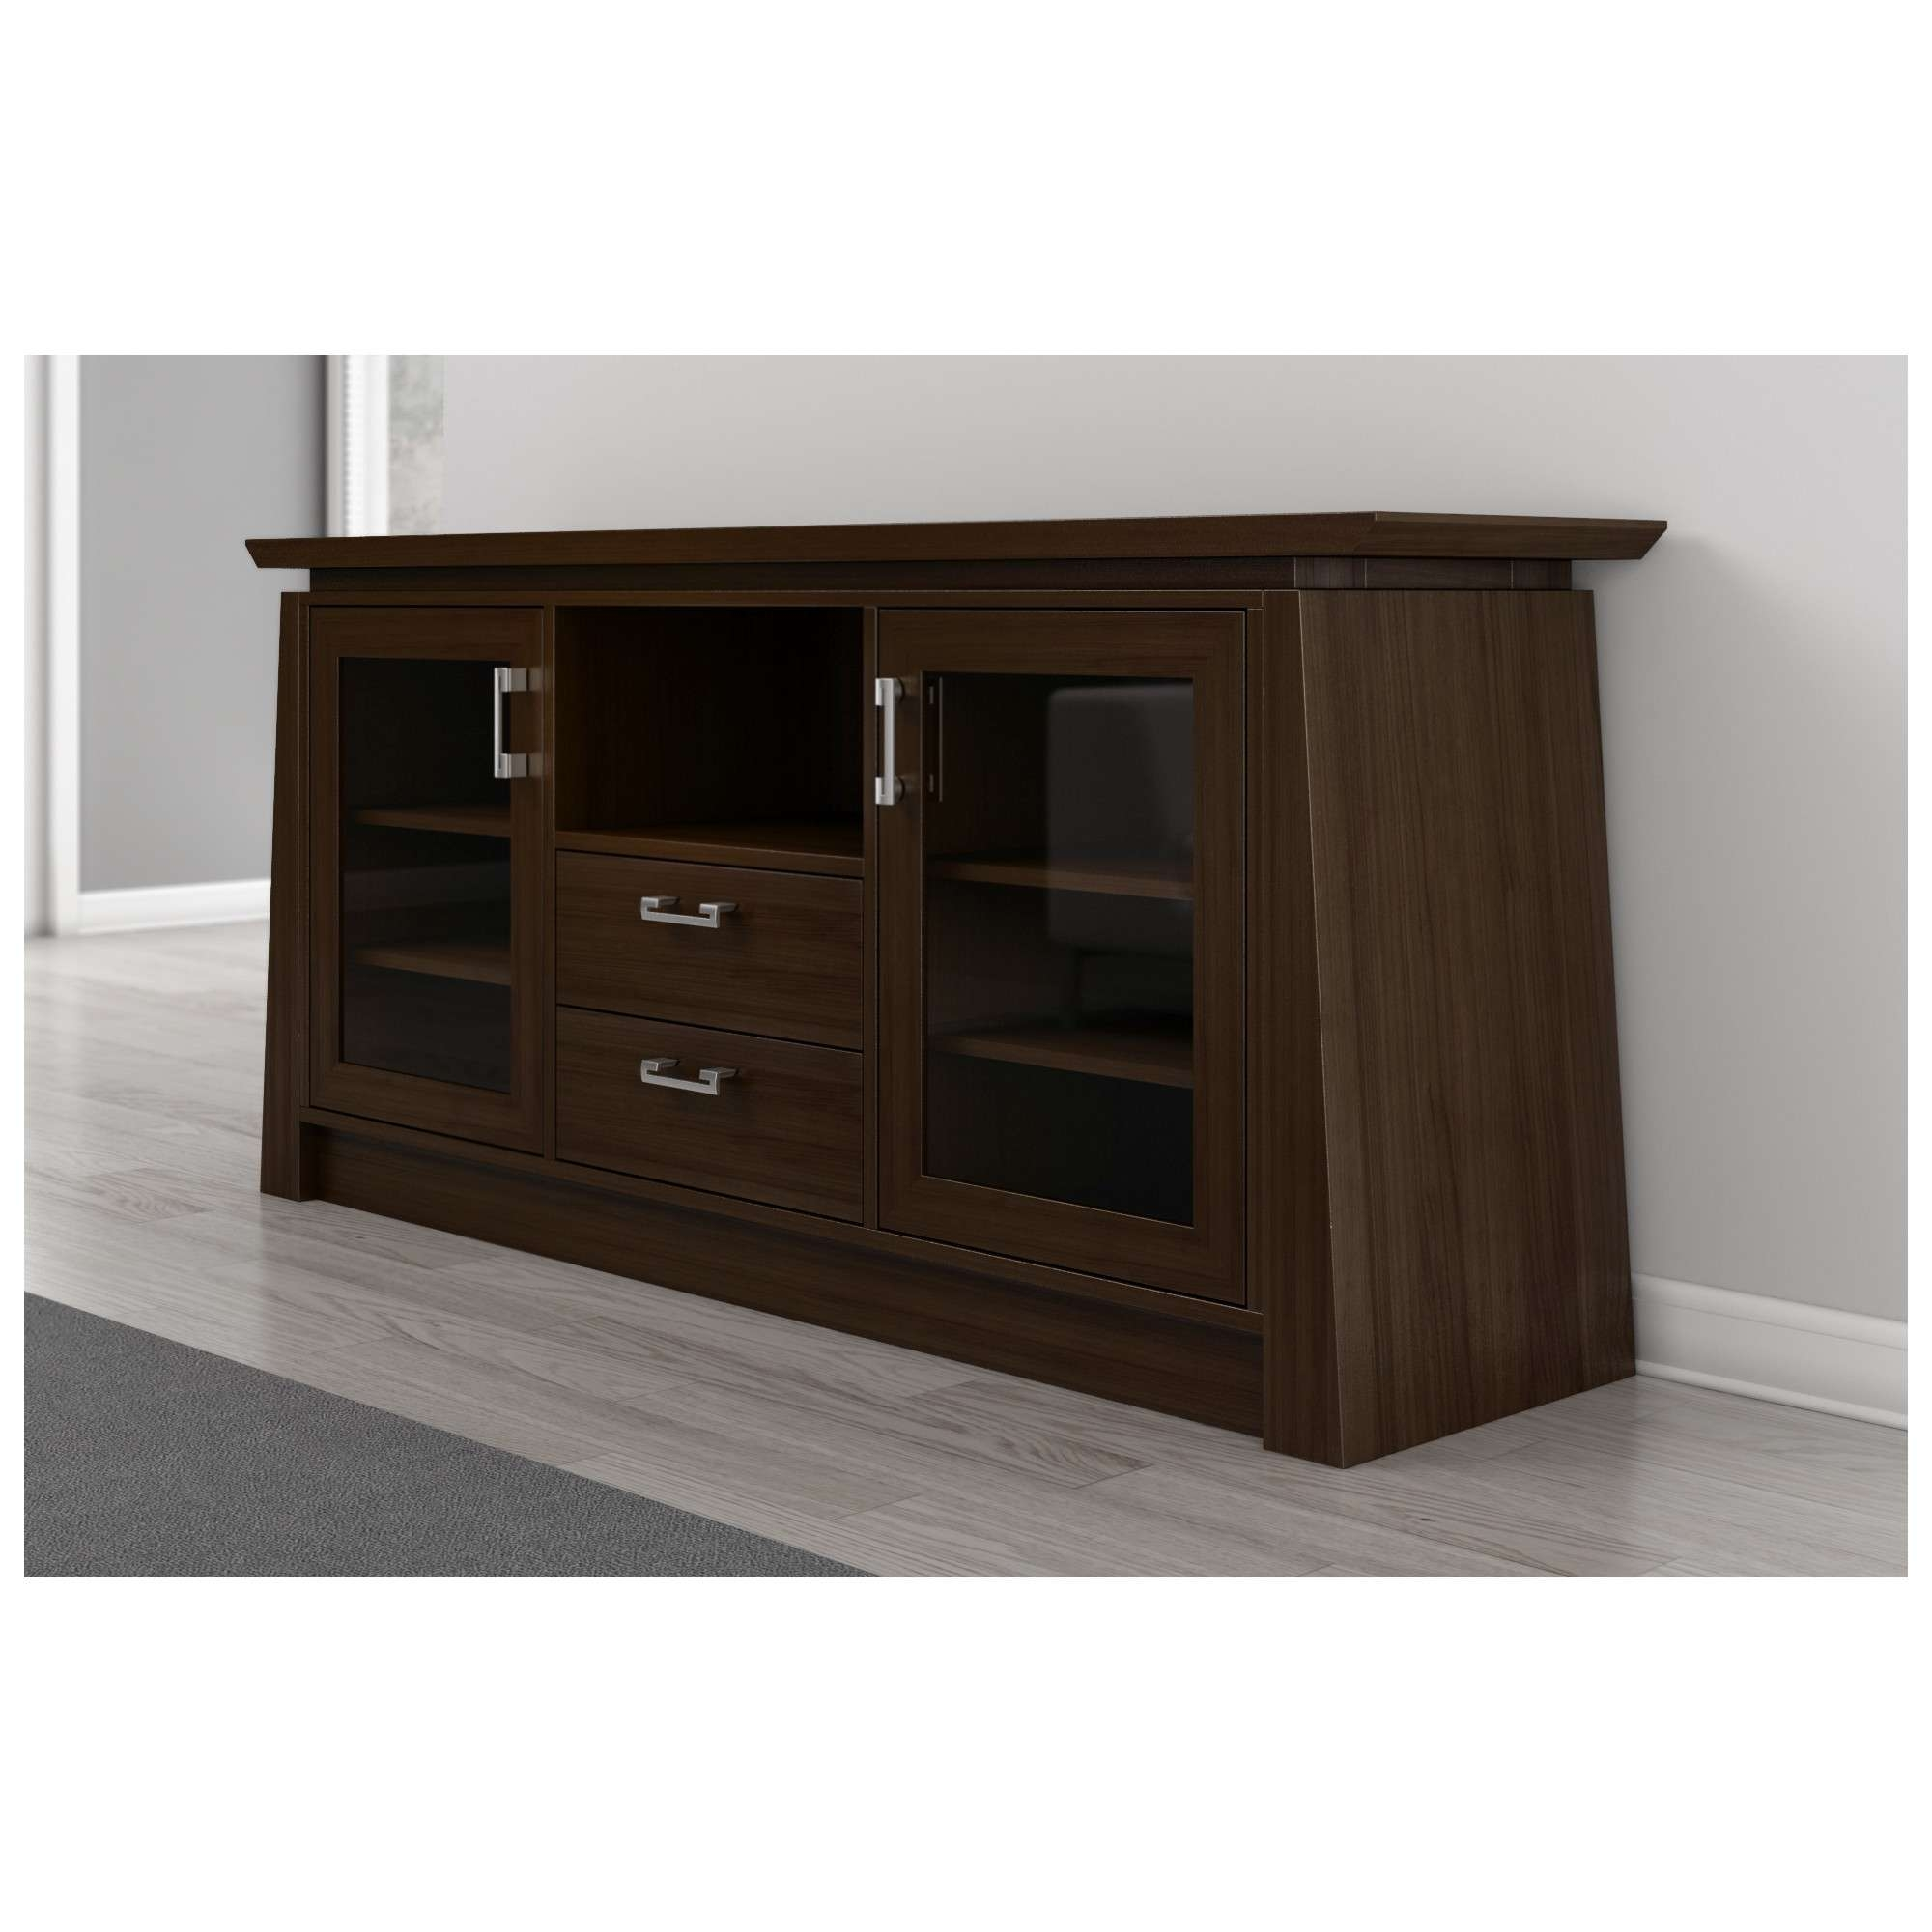 "Furnitech Elegante 70"" Tv Stand Asian Style Media Cabinet W Inside Asian Tv Cabinets (View 6 of 20)"